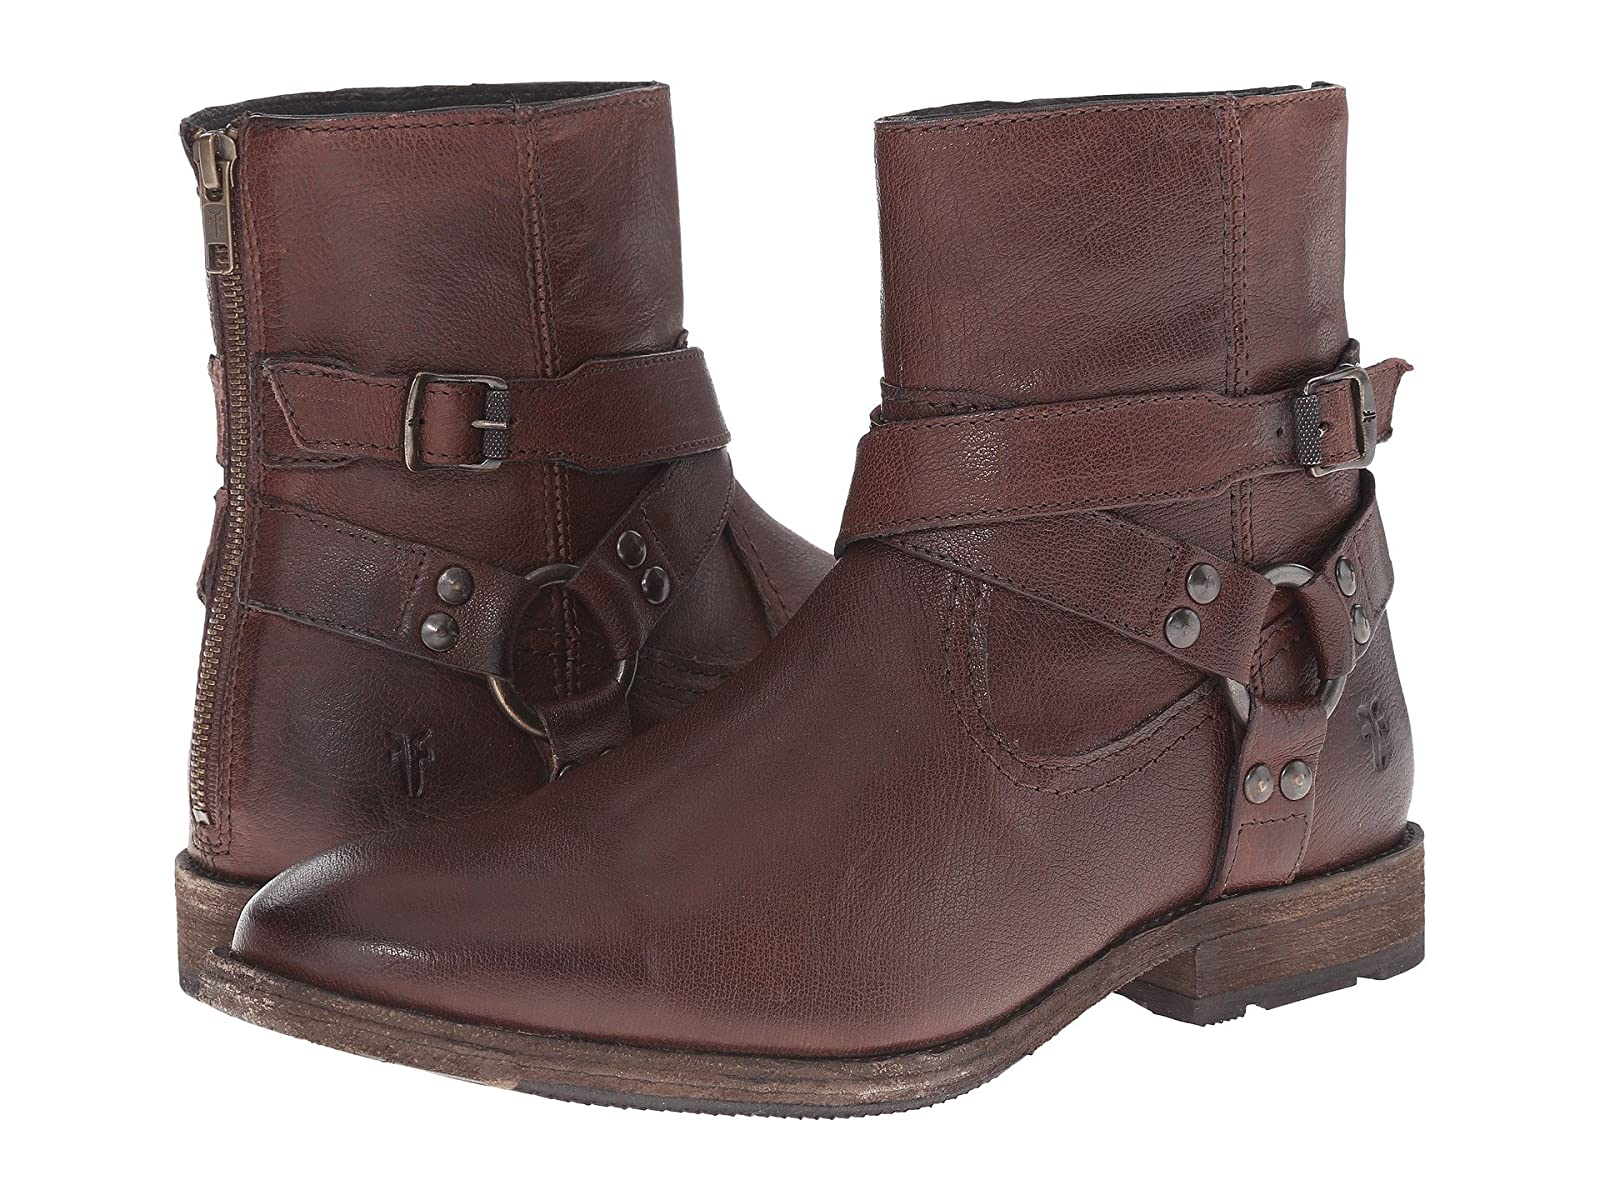 Frye Ethan HarnessCheap and distinctive eye-catching shoes